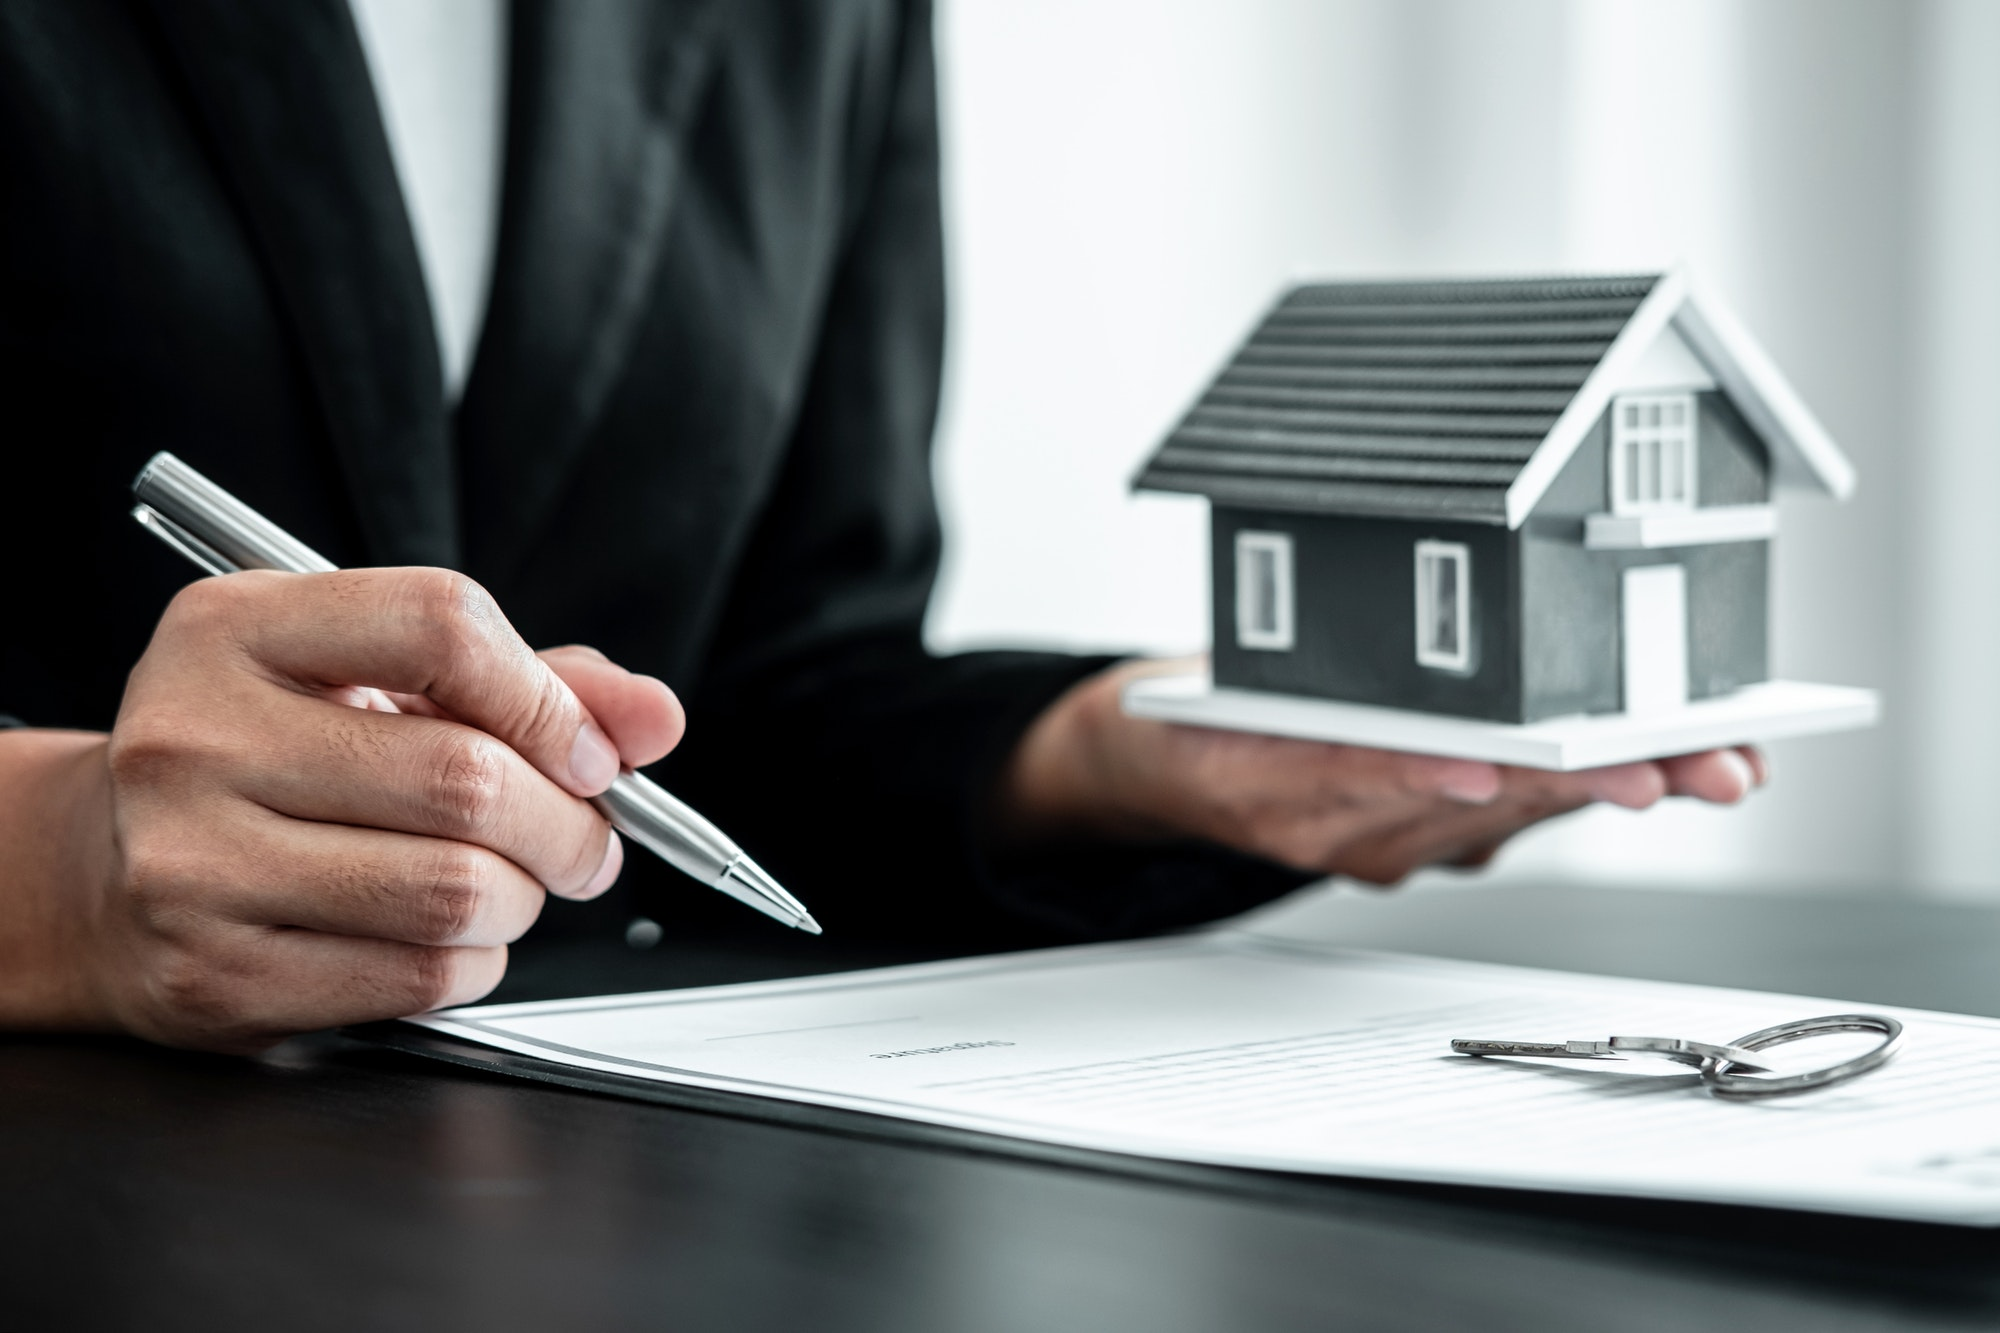 Real estate agent working sign agreement document contract for home loan insurance